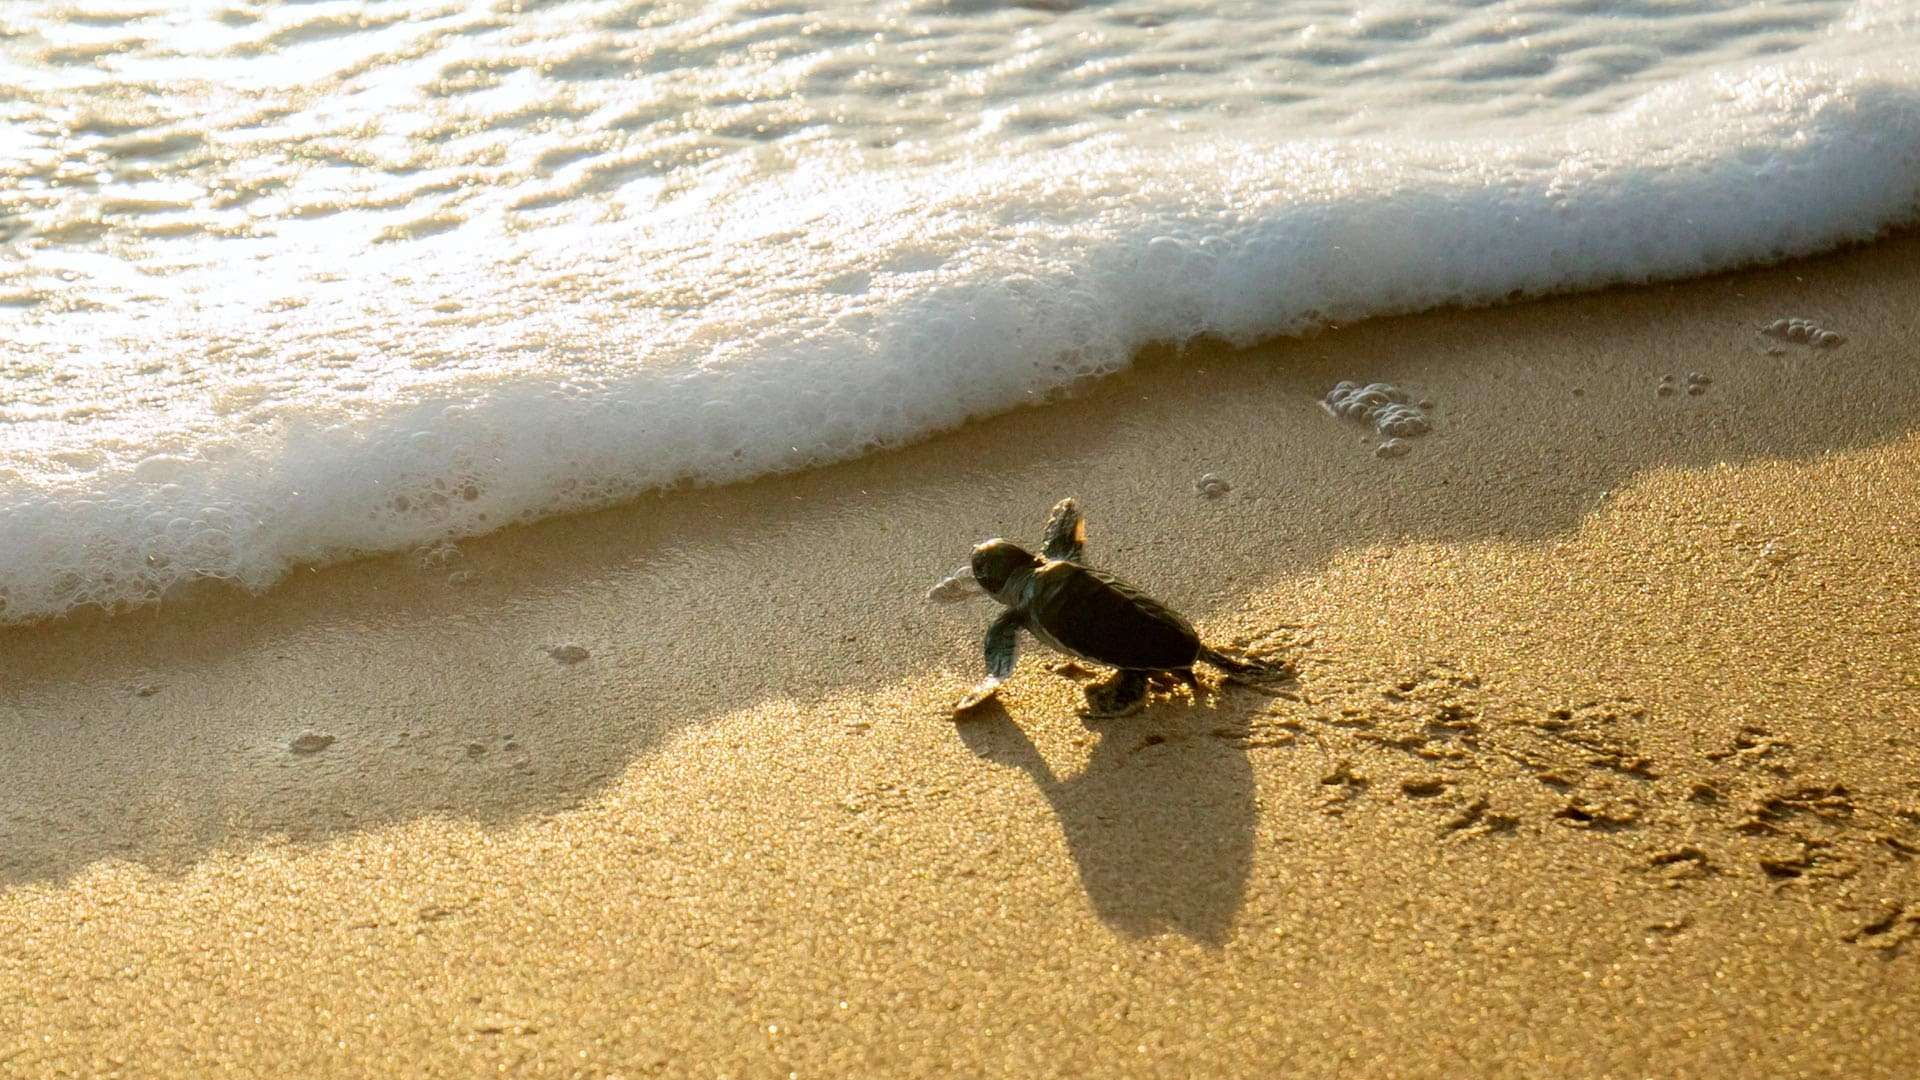 Small Turtle Directed To The Sea